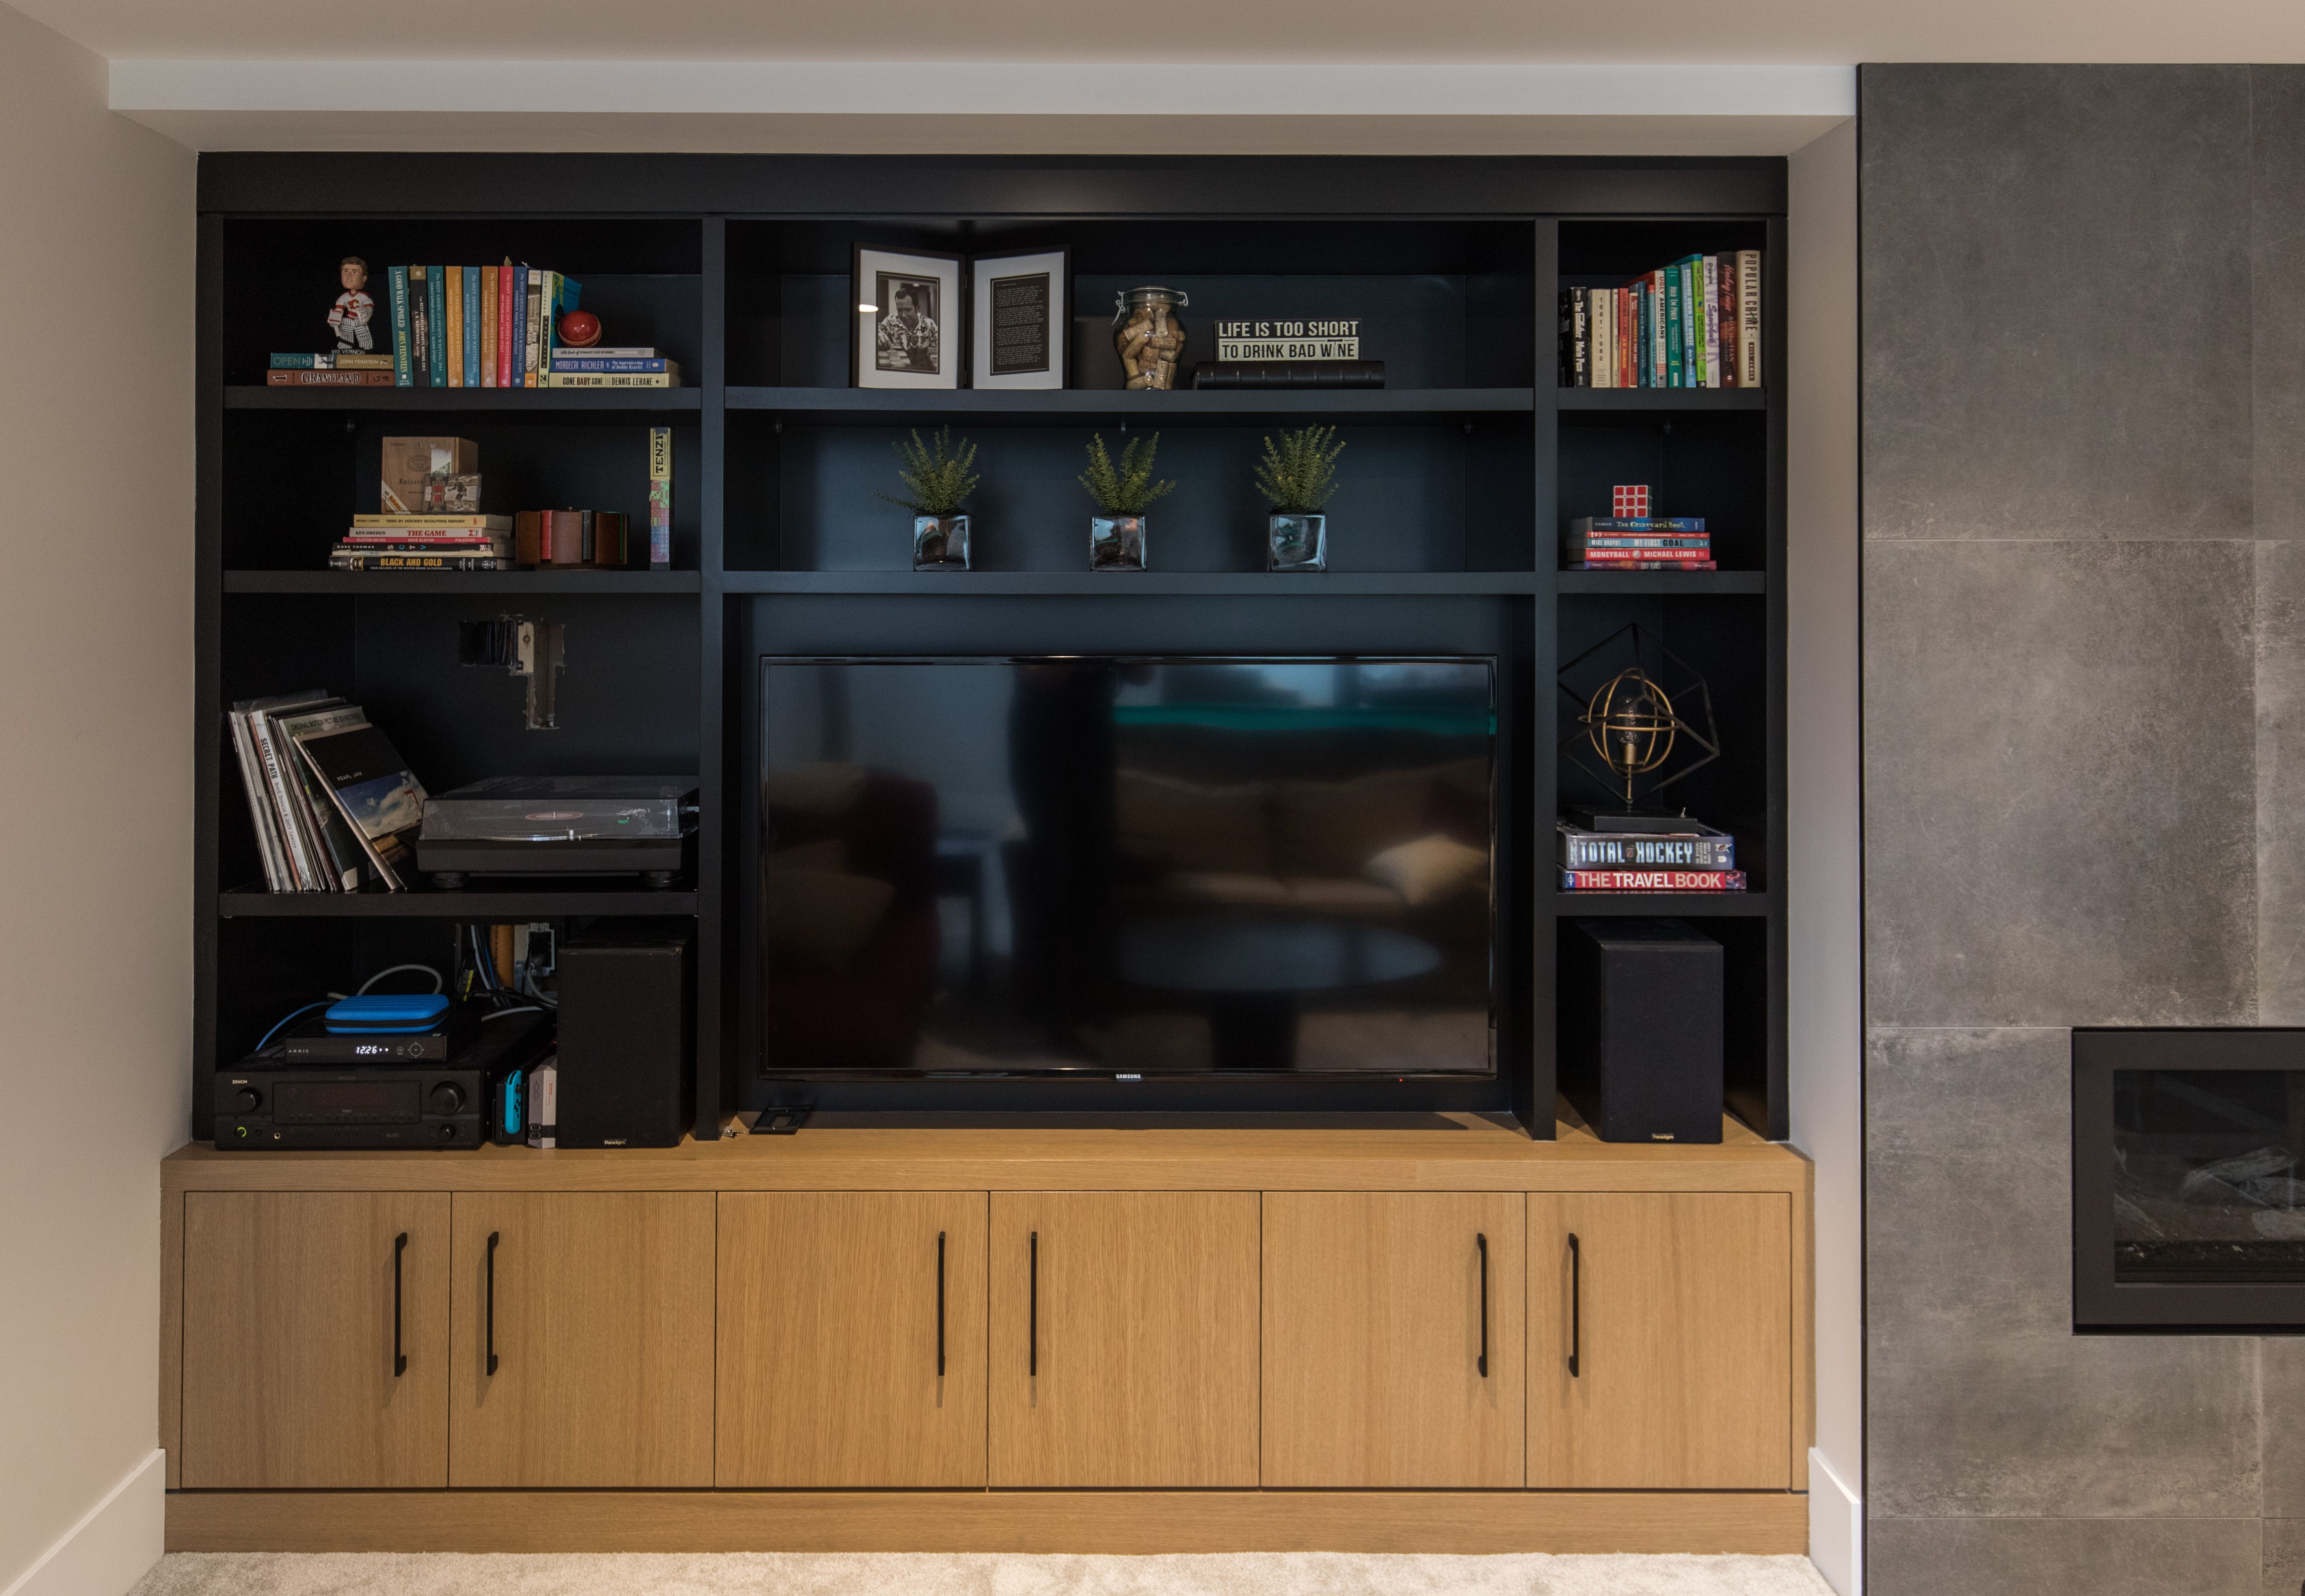 Projects Rochelle Cote The Basement Media Room From The Inner City Residence William Blake Homes In 2020 City Residences Inner City Residences